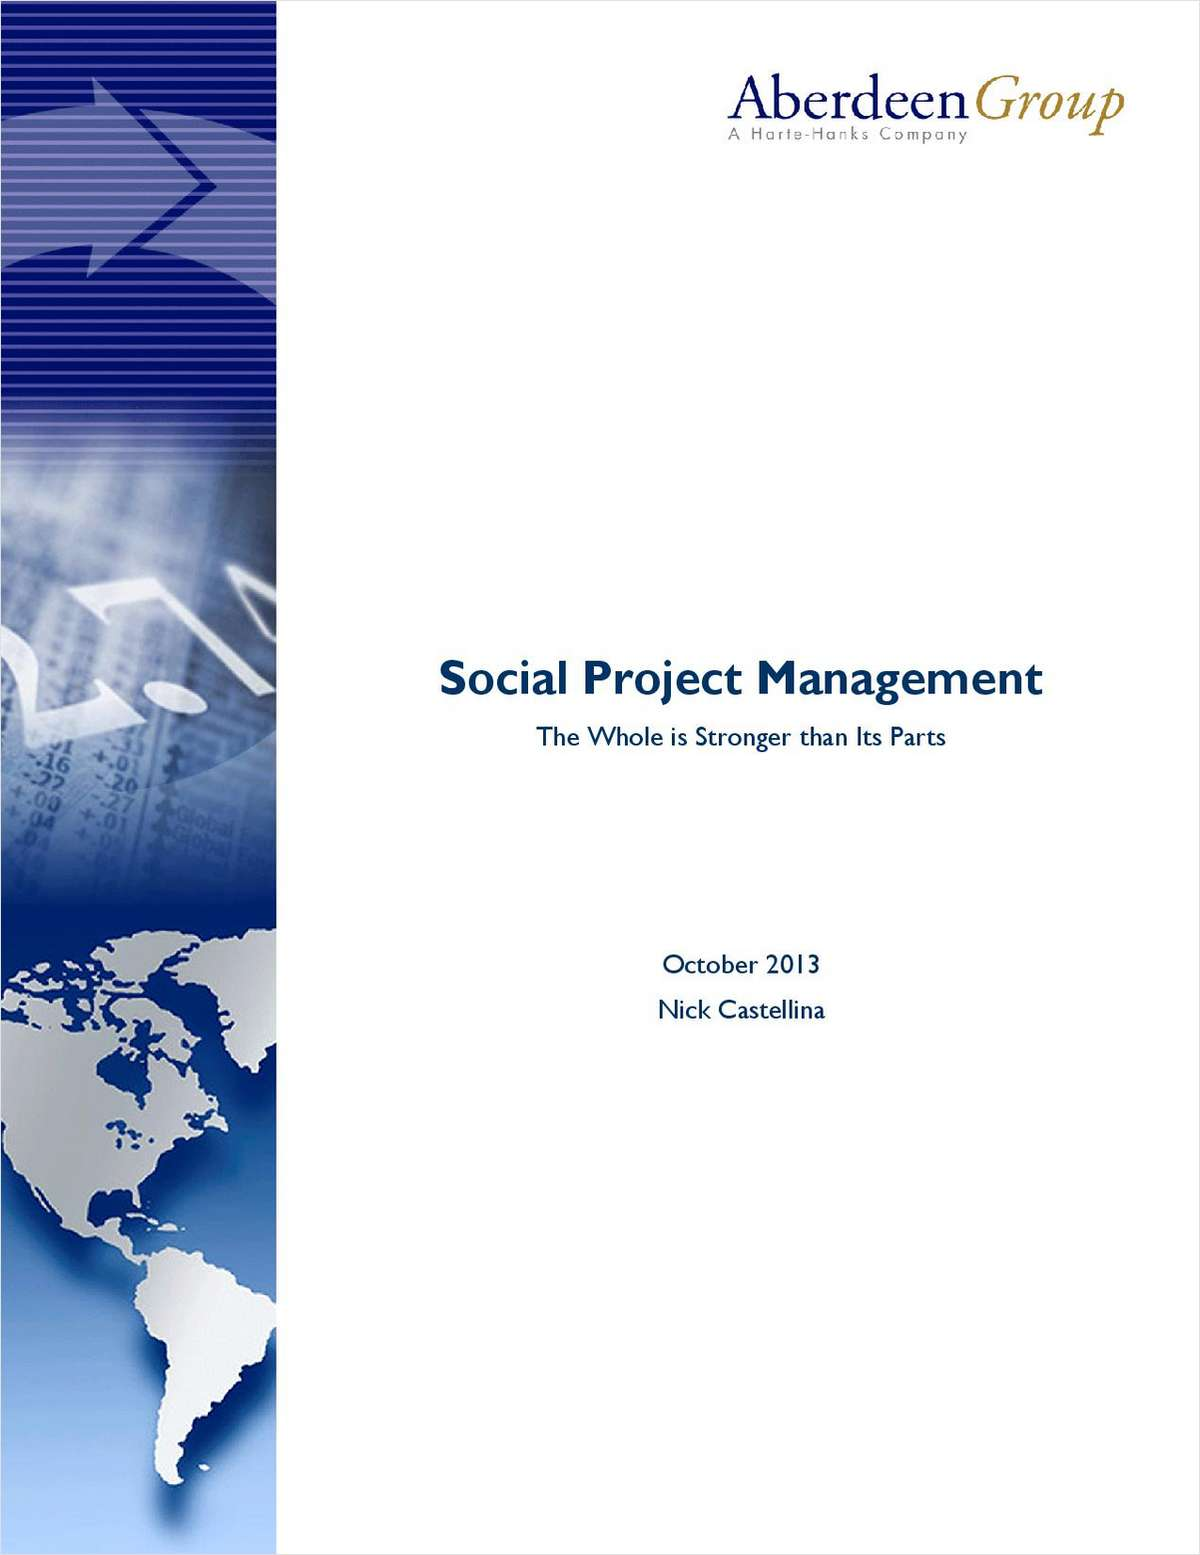 Social Project Management: The Whole is Stronger Than Its Parts